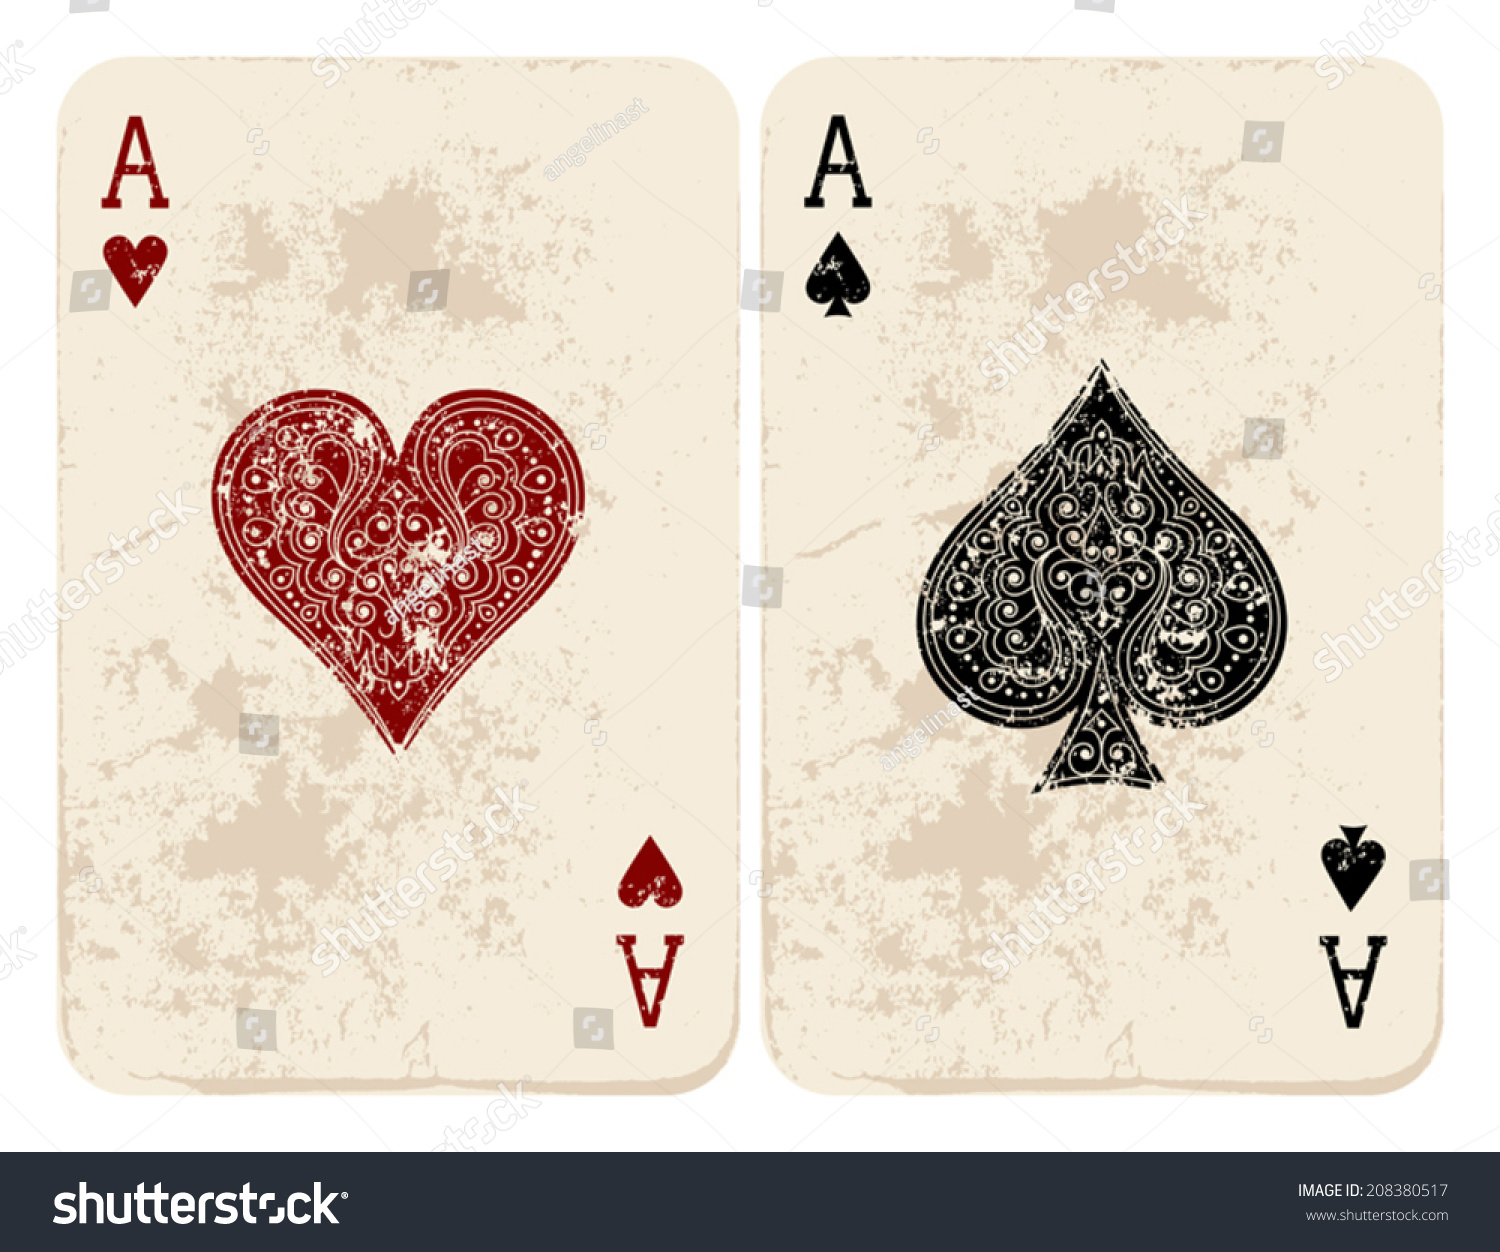 Ace Hearts Spades Stock Vector 208380517 - Shutterstock